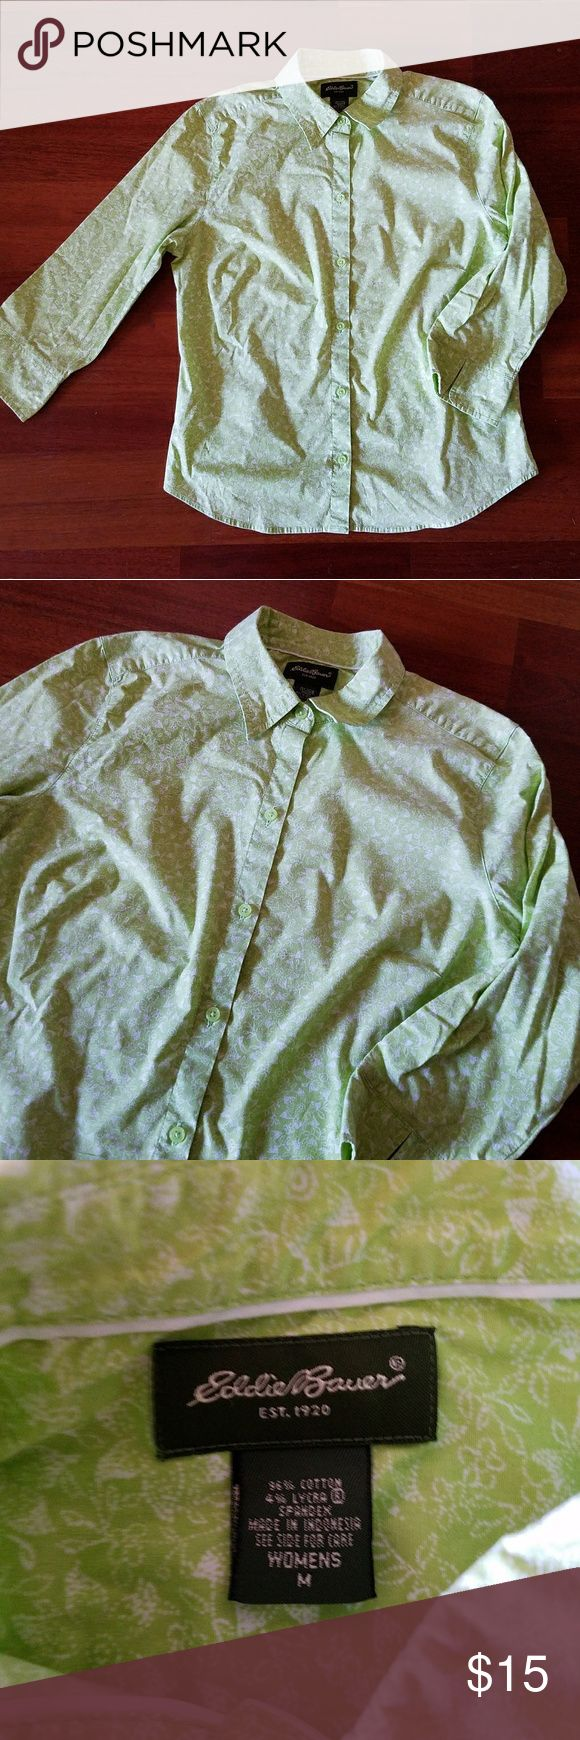 Eddie Bauer Lime Green Shirt This muted lime green button up shirt is perfect for work and features a delicate white floral patter throughout. Eddie Bauer Tops Button Down Shirts